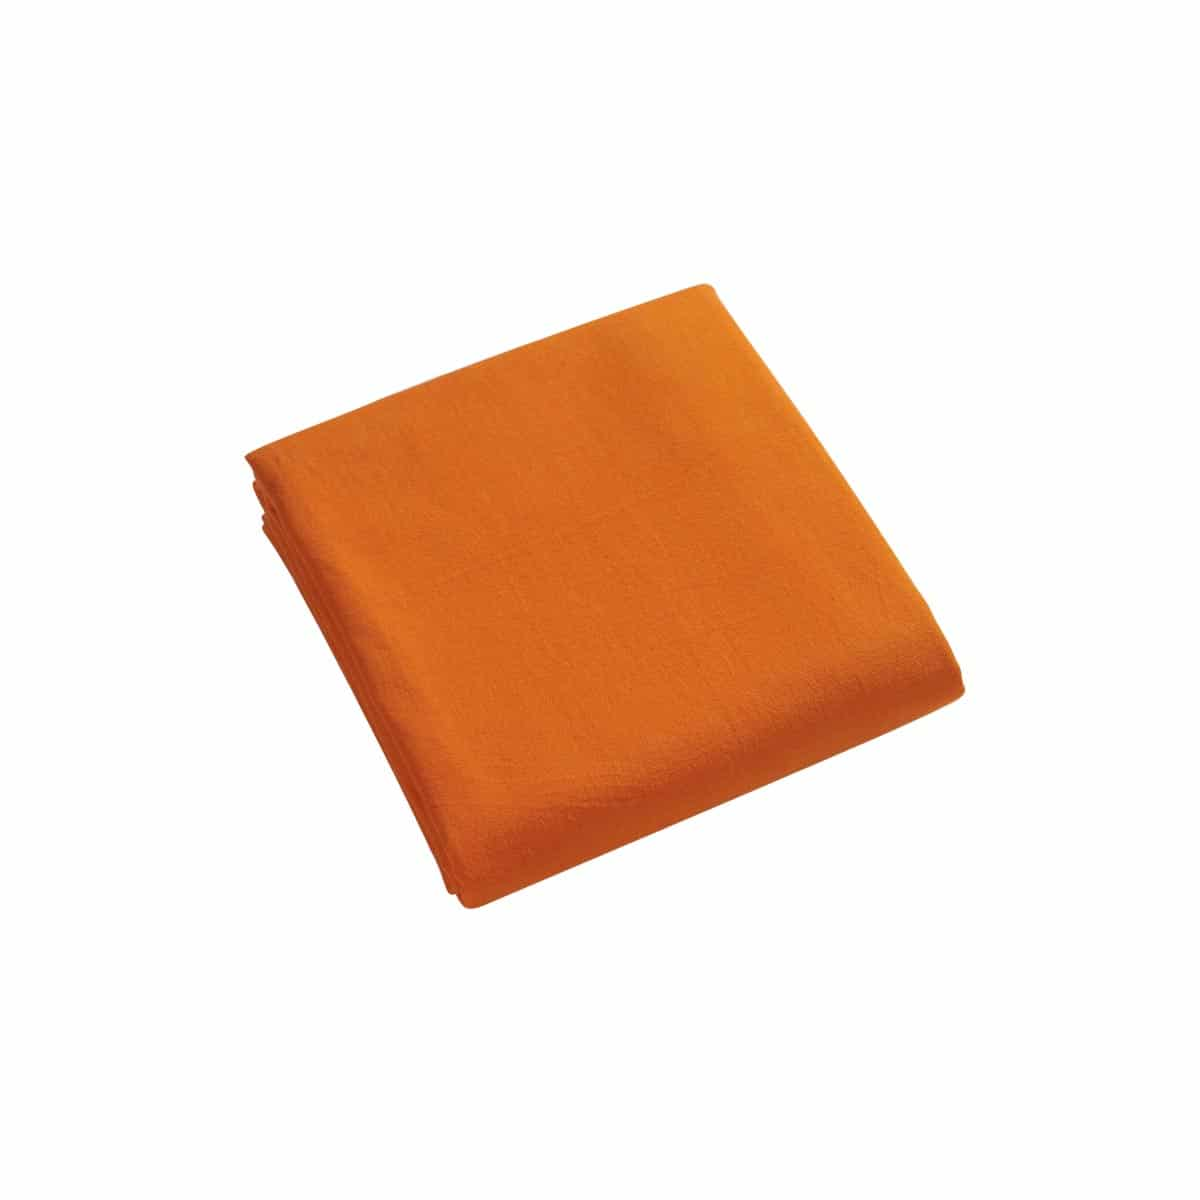 nappe de table smart orange serax orange zeeloft